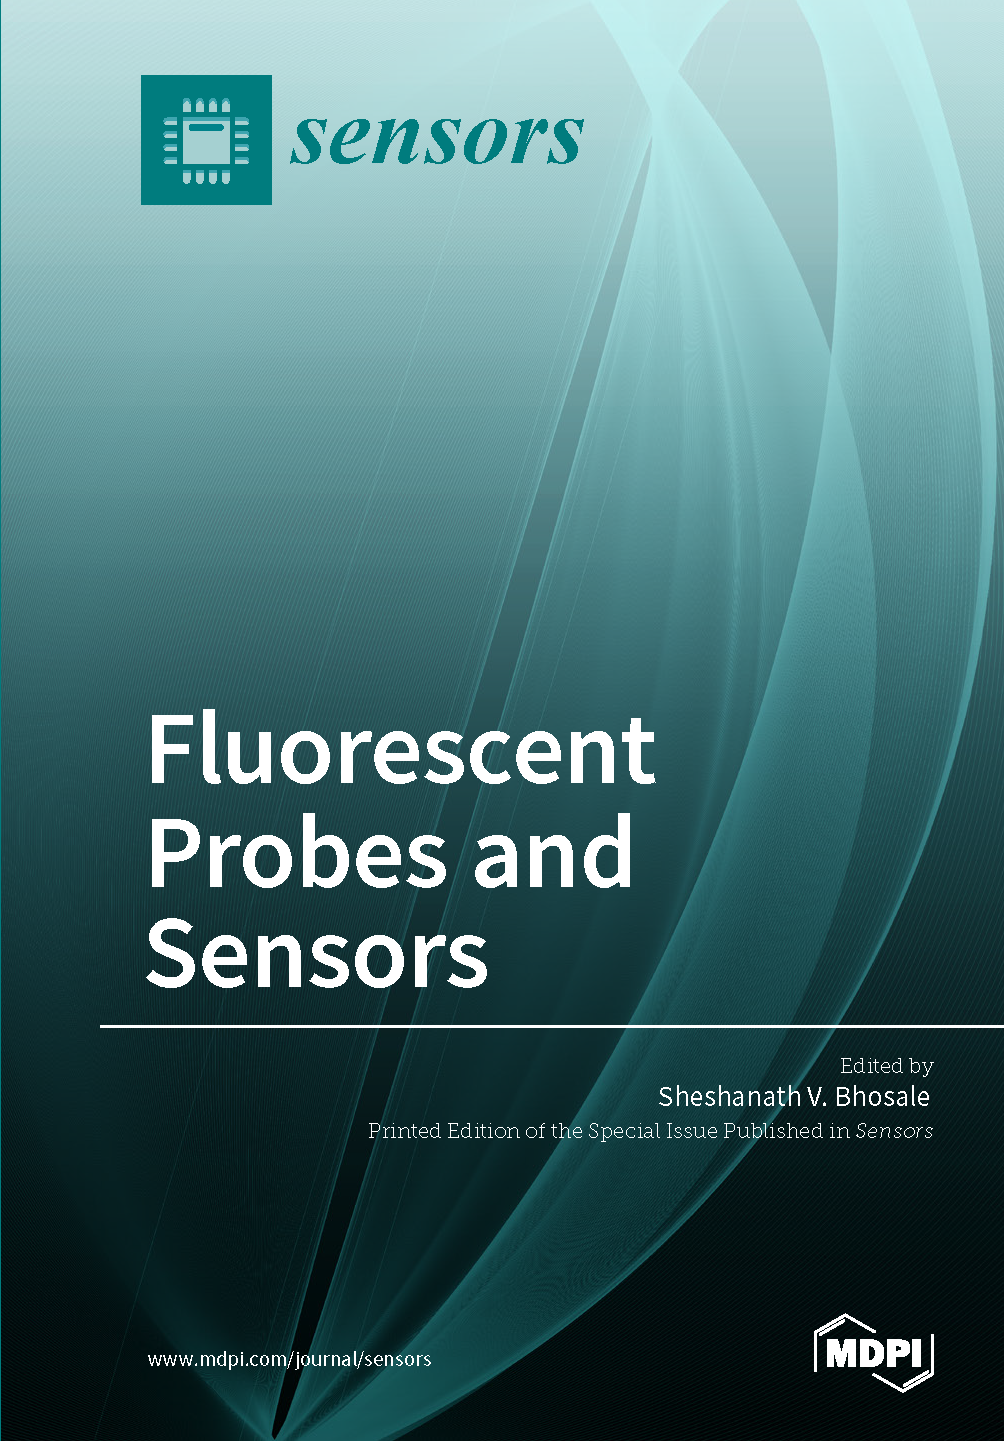 Fluorescent Probes and Sensors